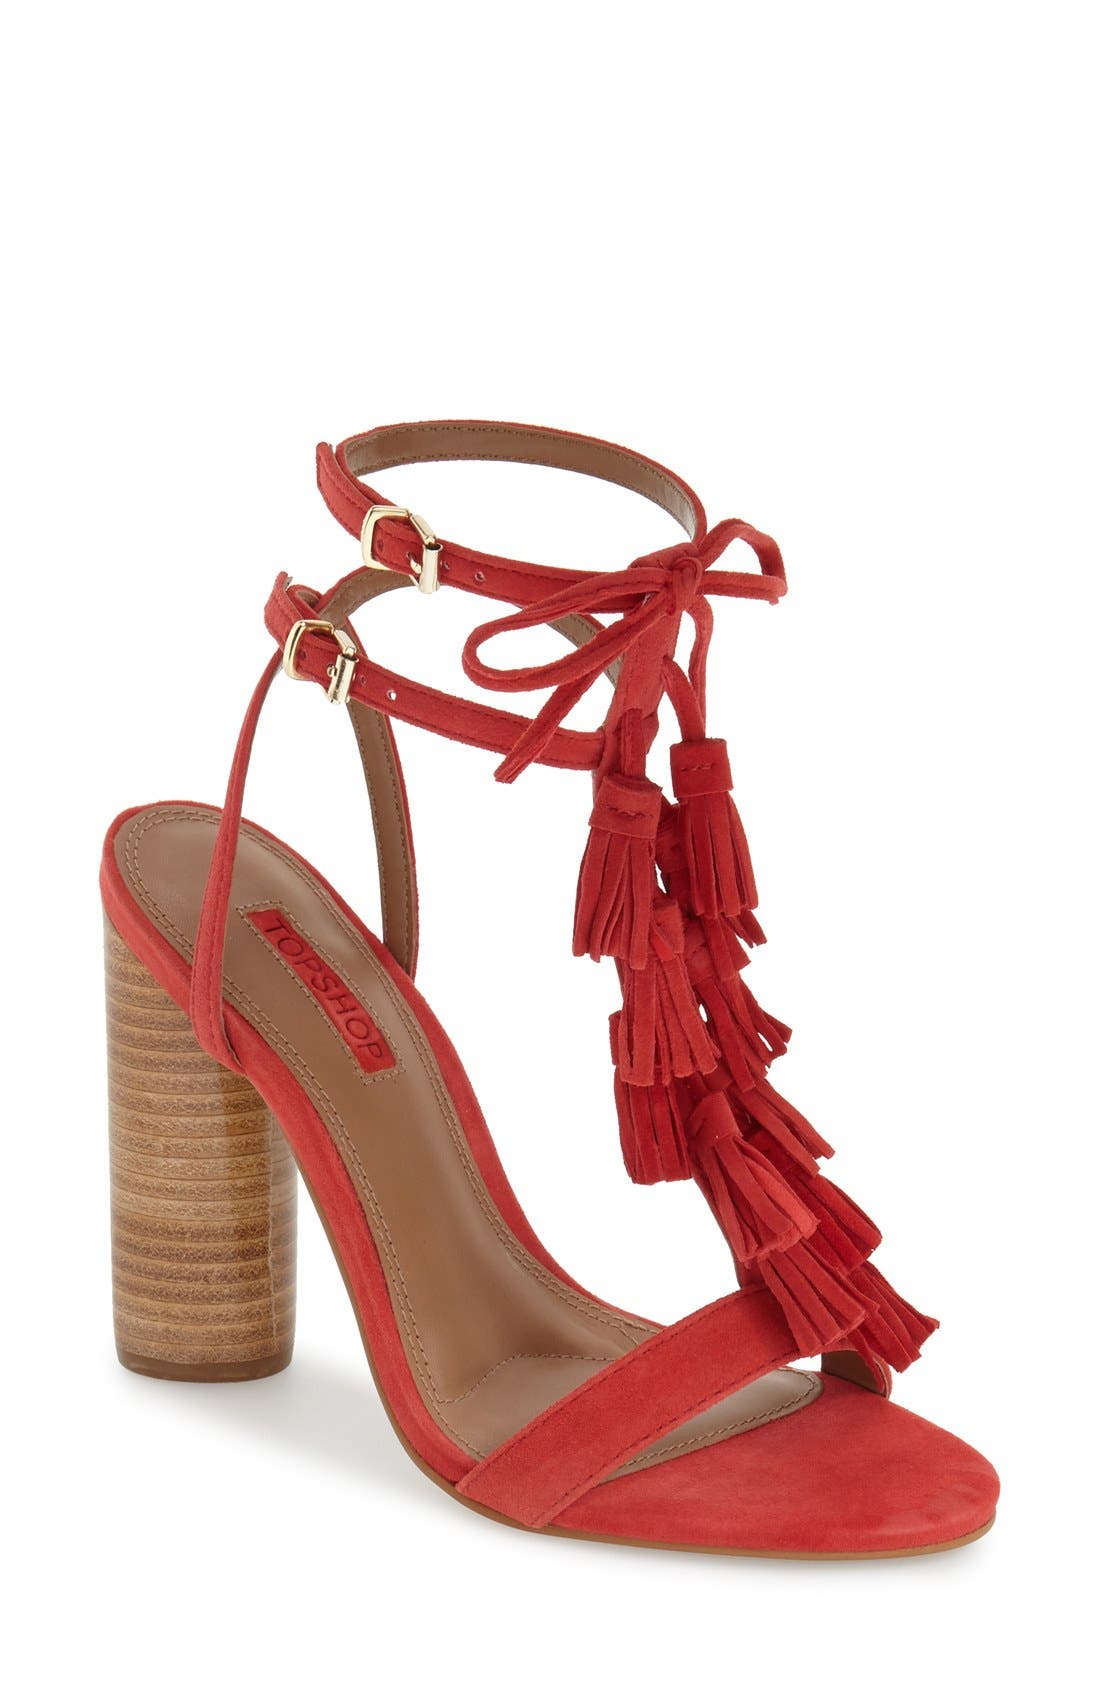 Alternate Image 1 Selected - Topshop 'Ripple' Tasseled Round Heel Sandal (Women)